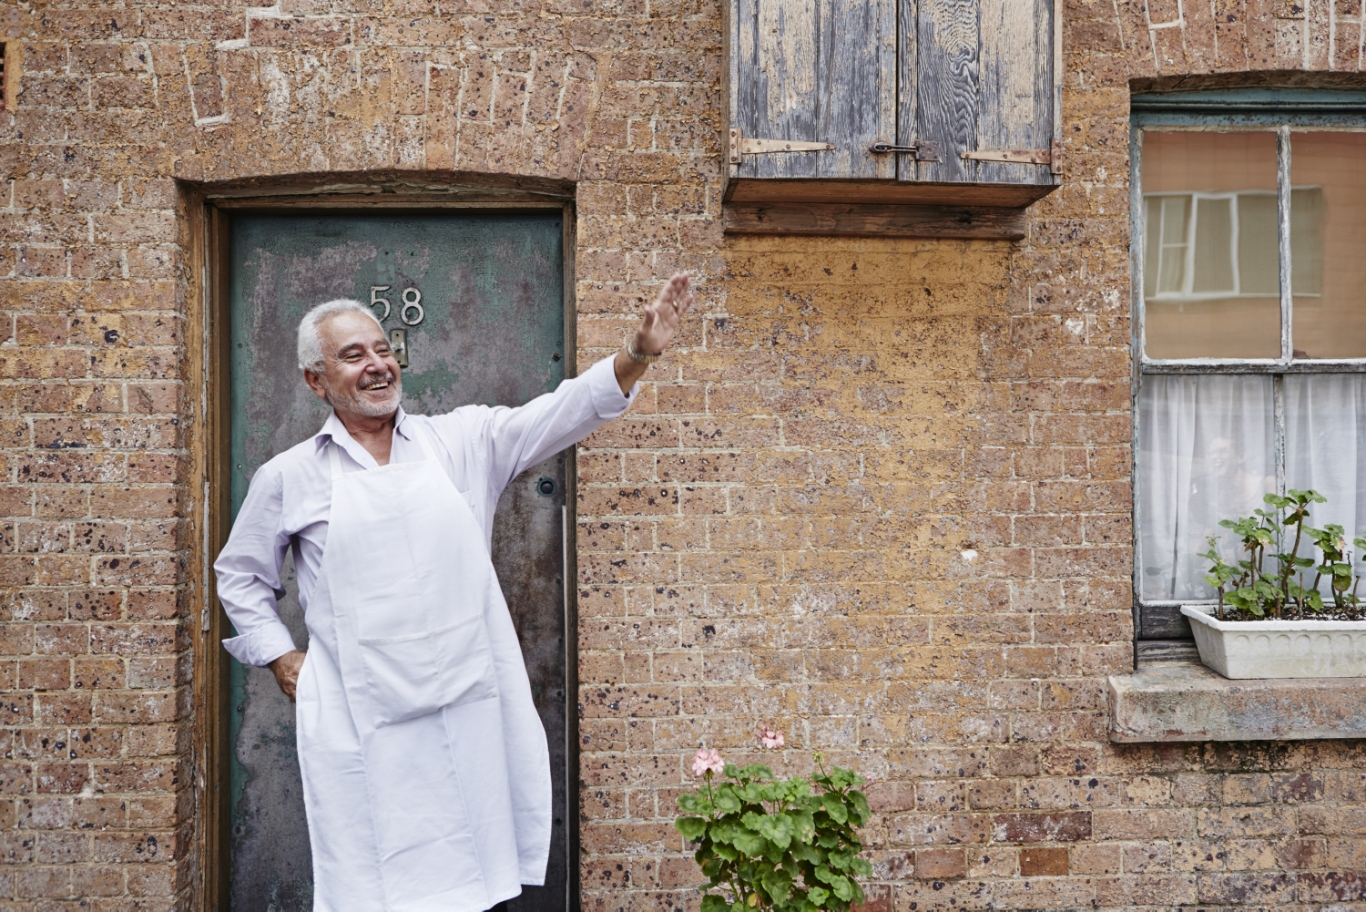 Man dressed in white waving outside front door of terrace house number 58.